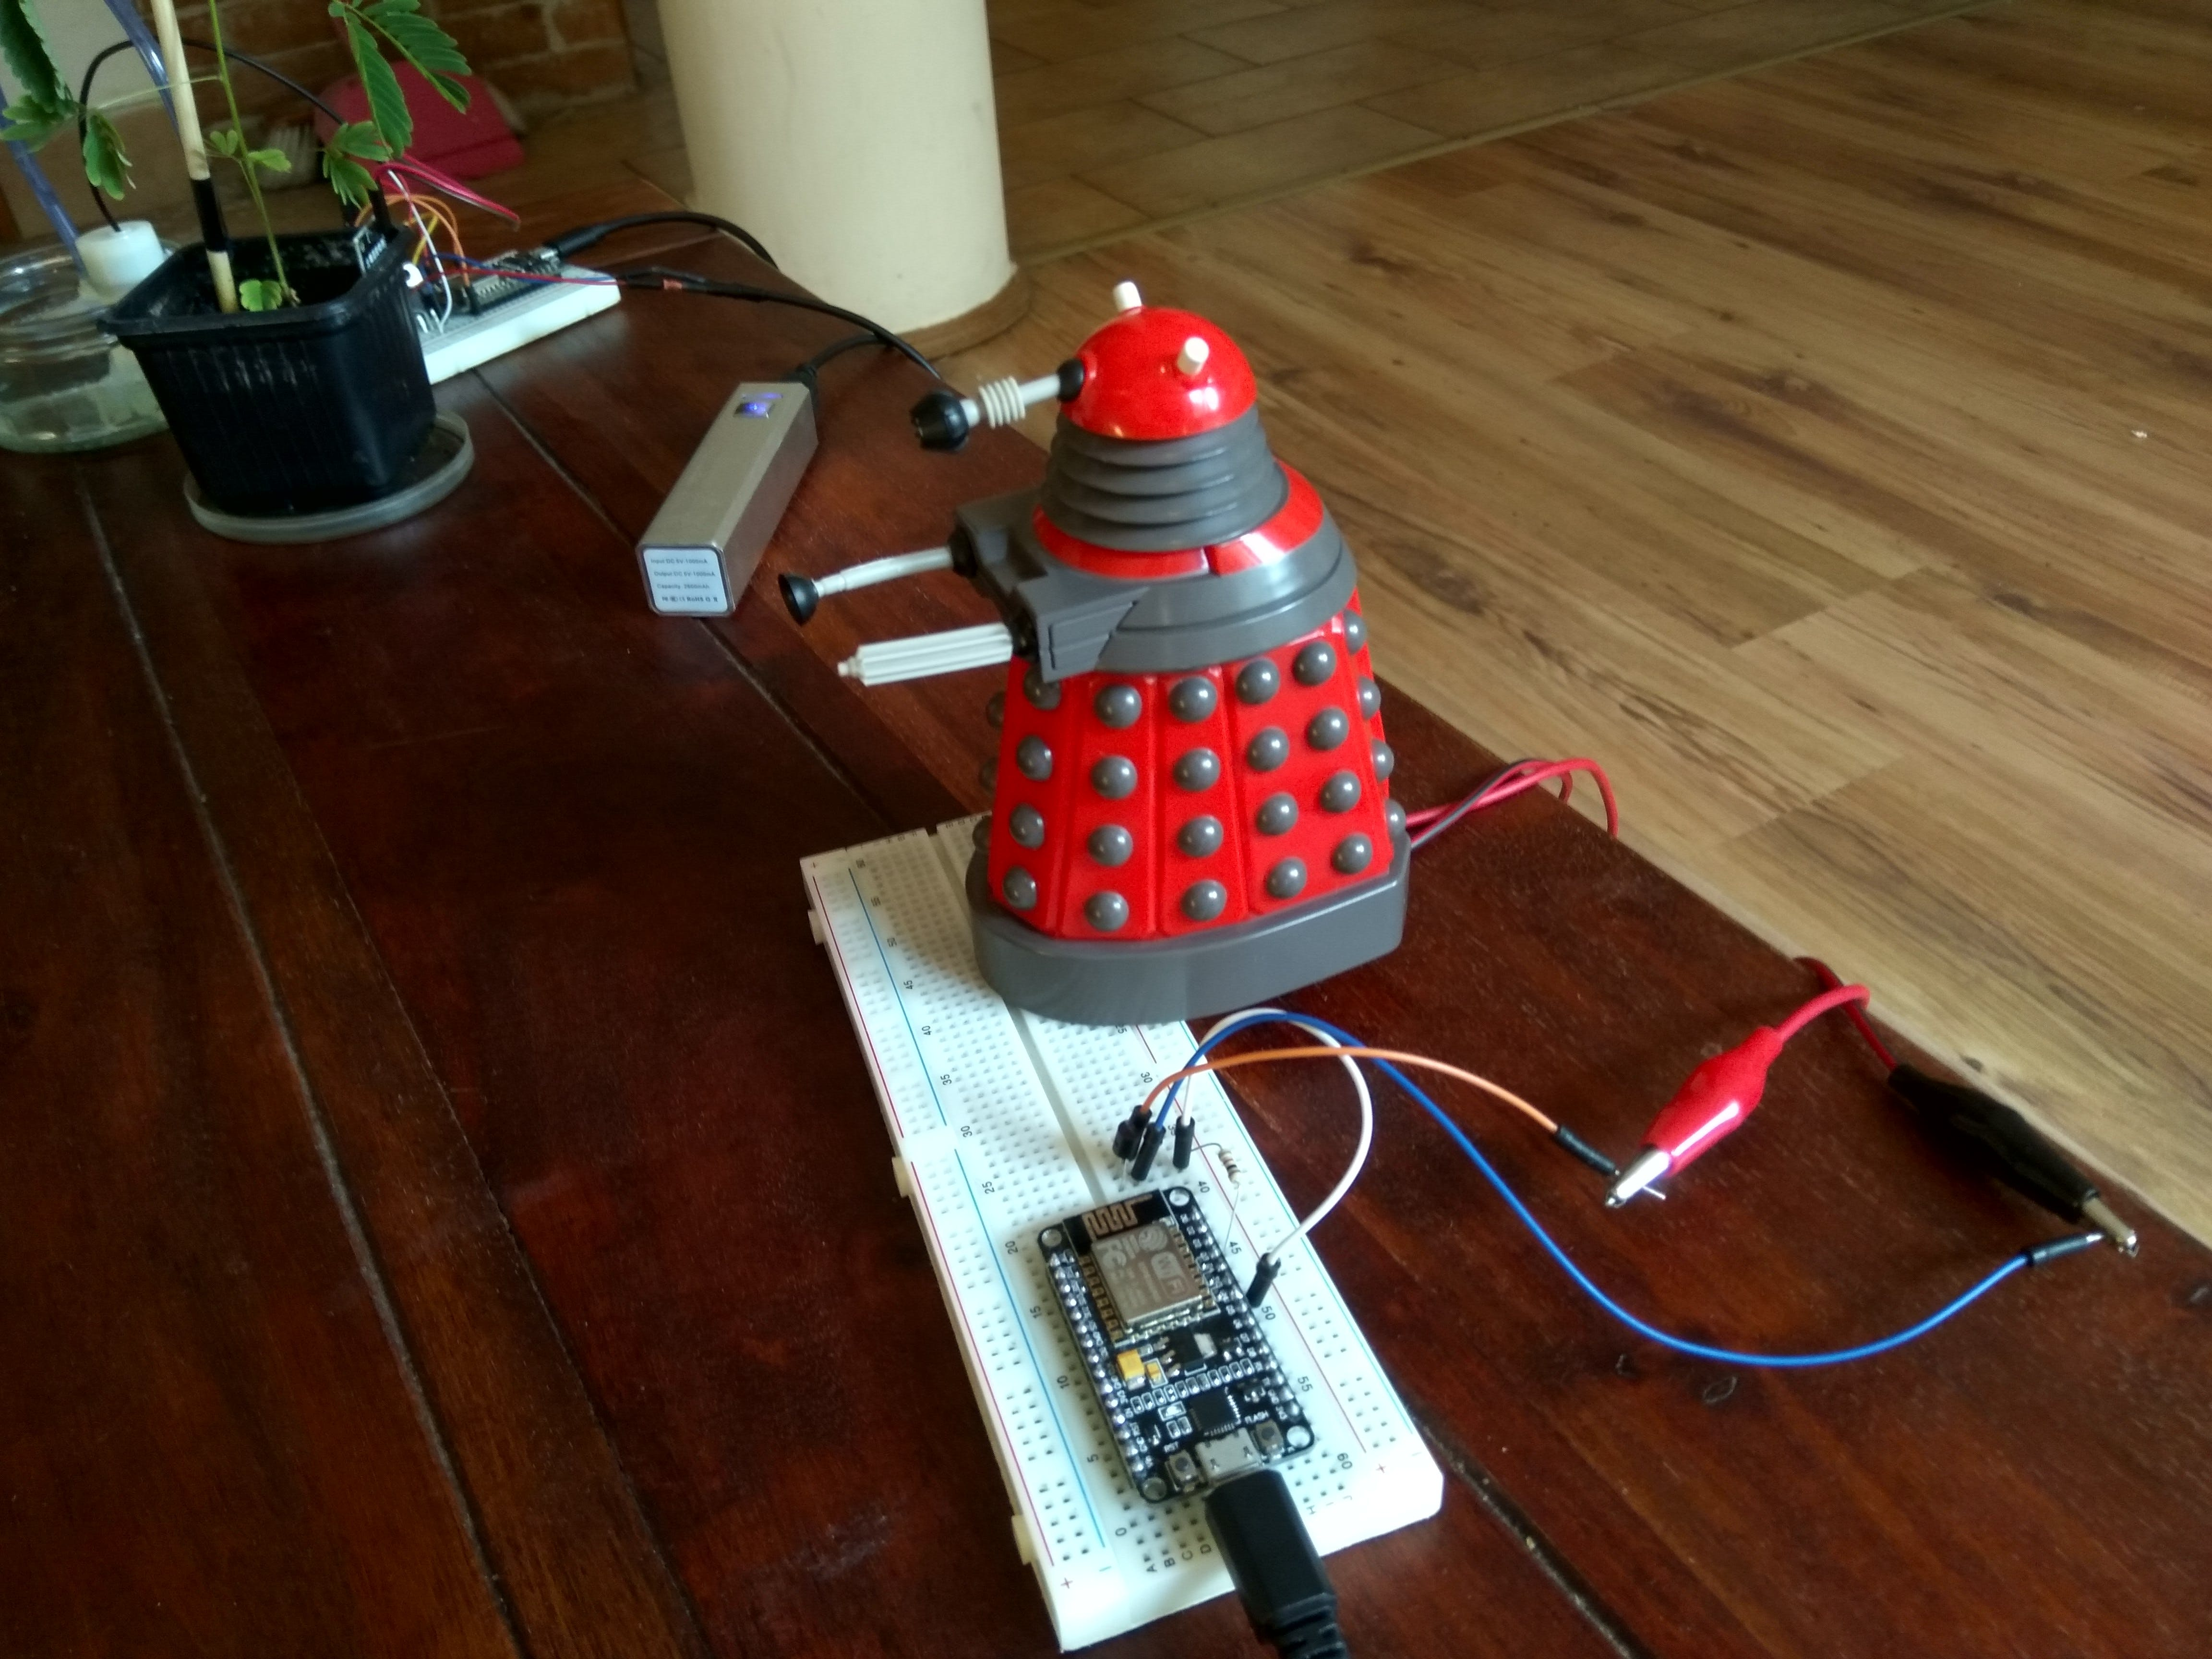 Ready to Exterminate at any moment!